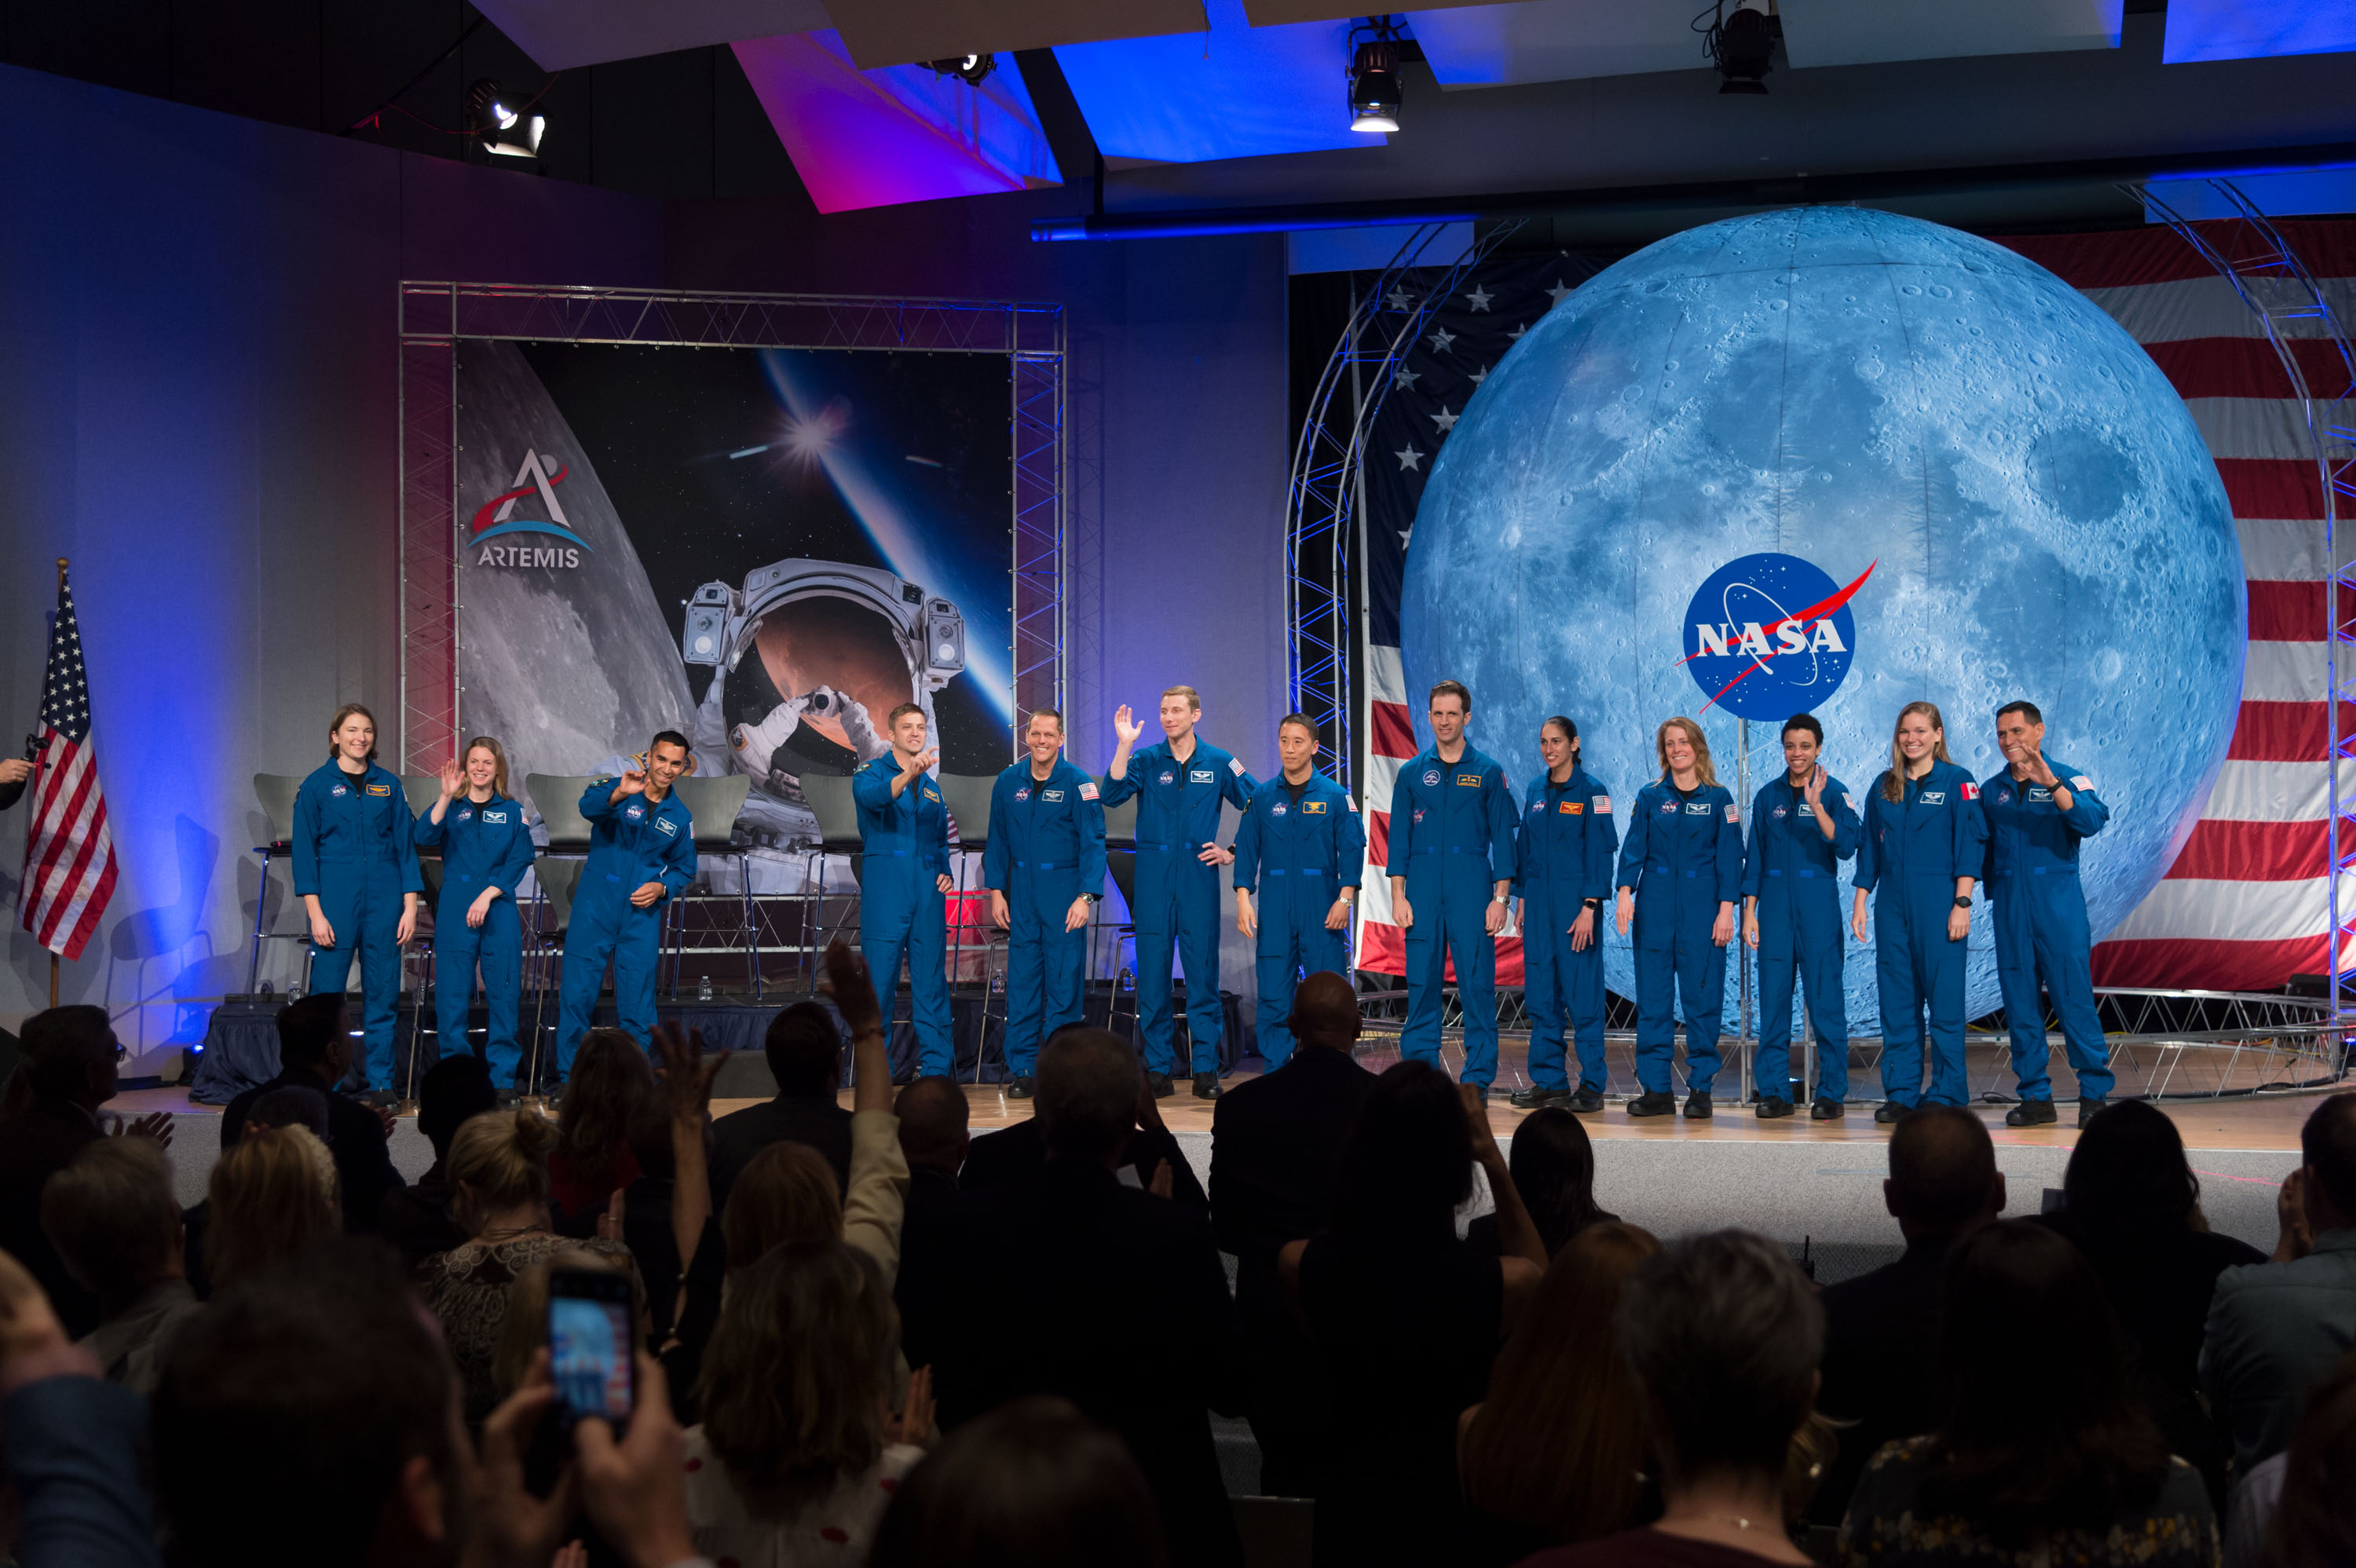 NASA's Newest Astronauts Ready for Space Station, Moon & Mars Missions - NASA/JPL Edu News